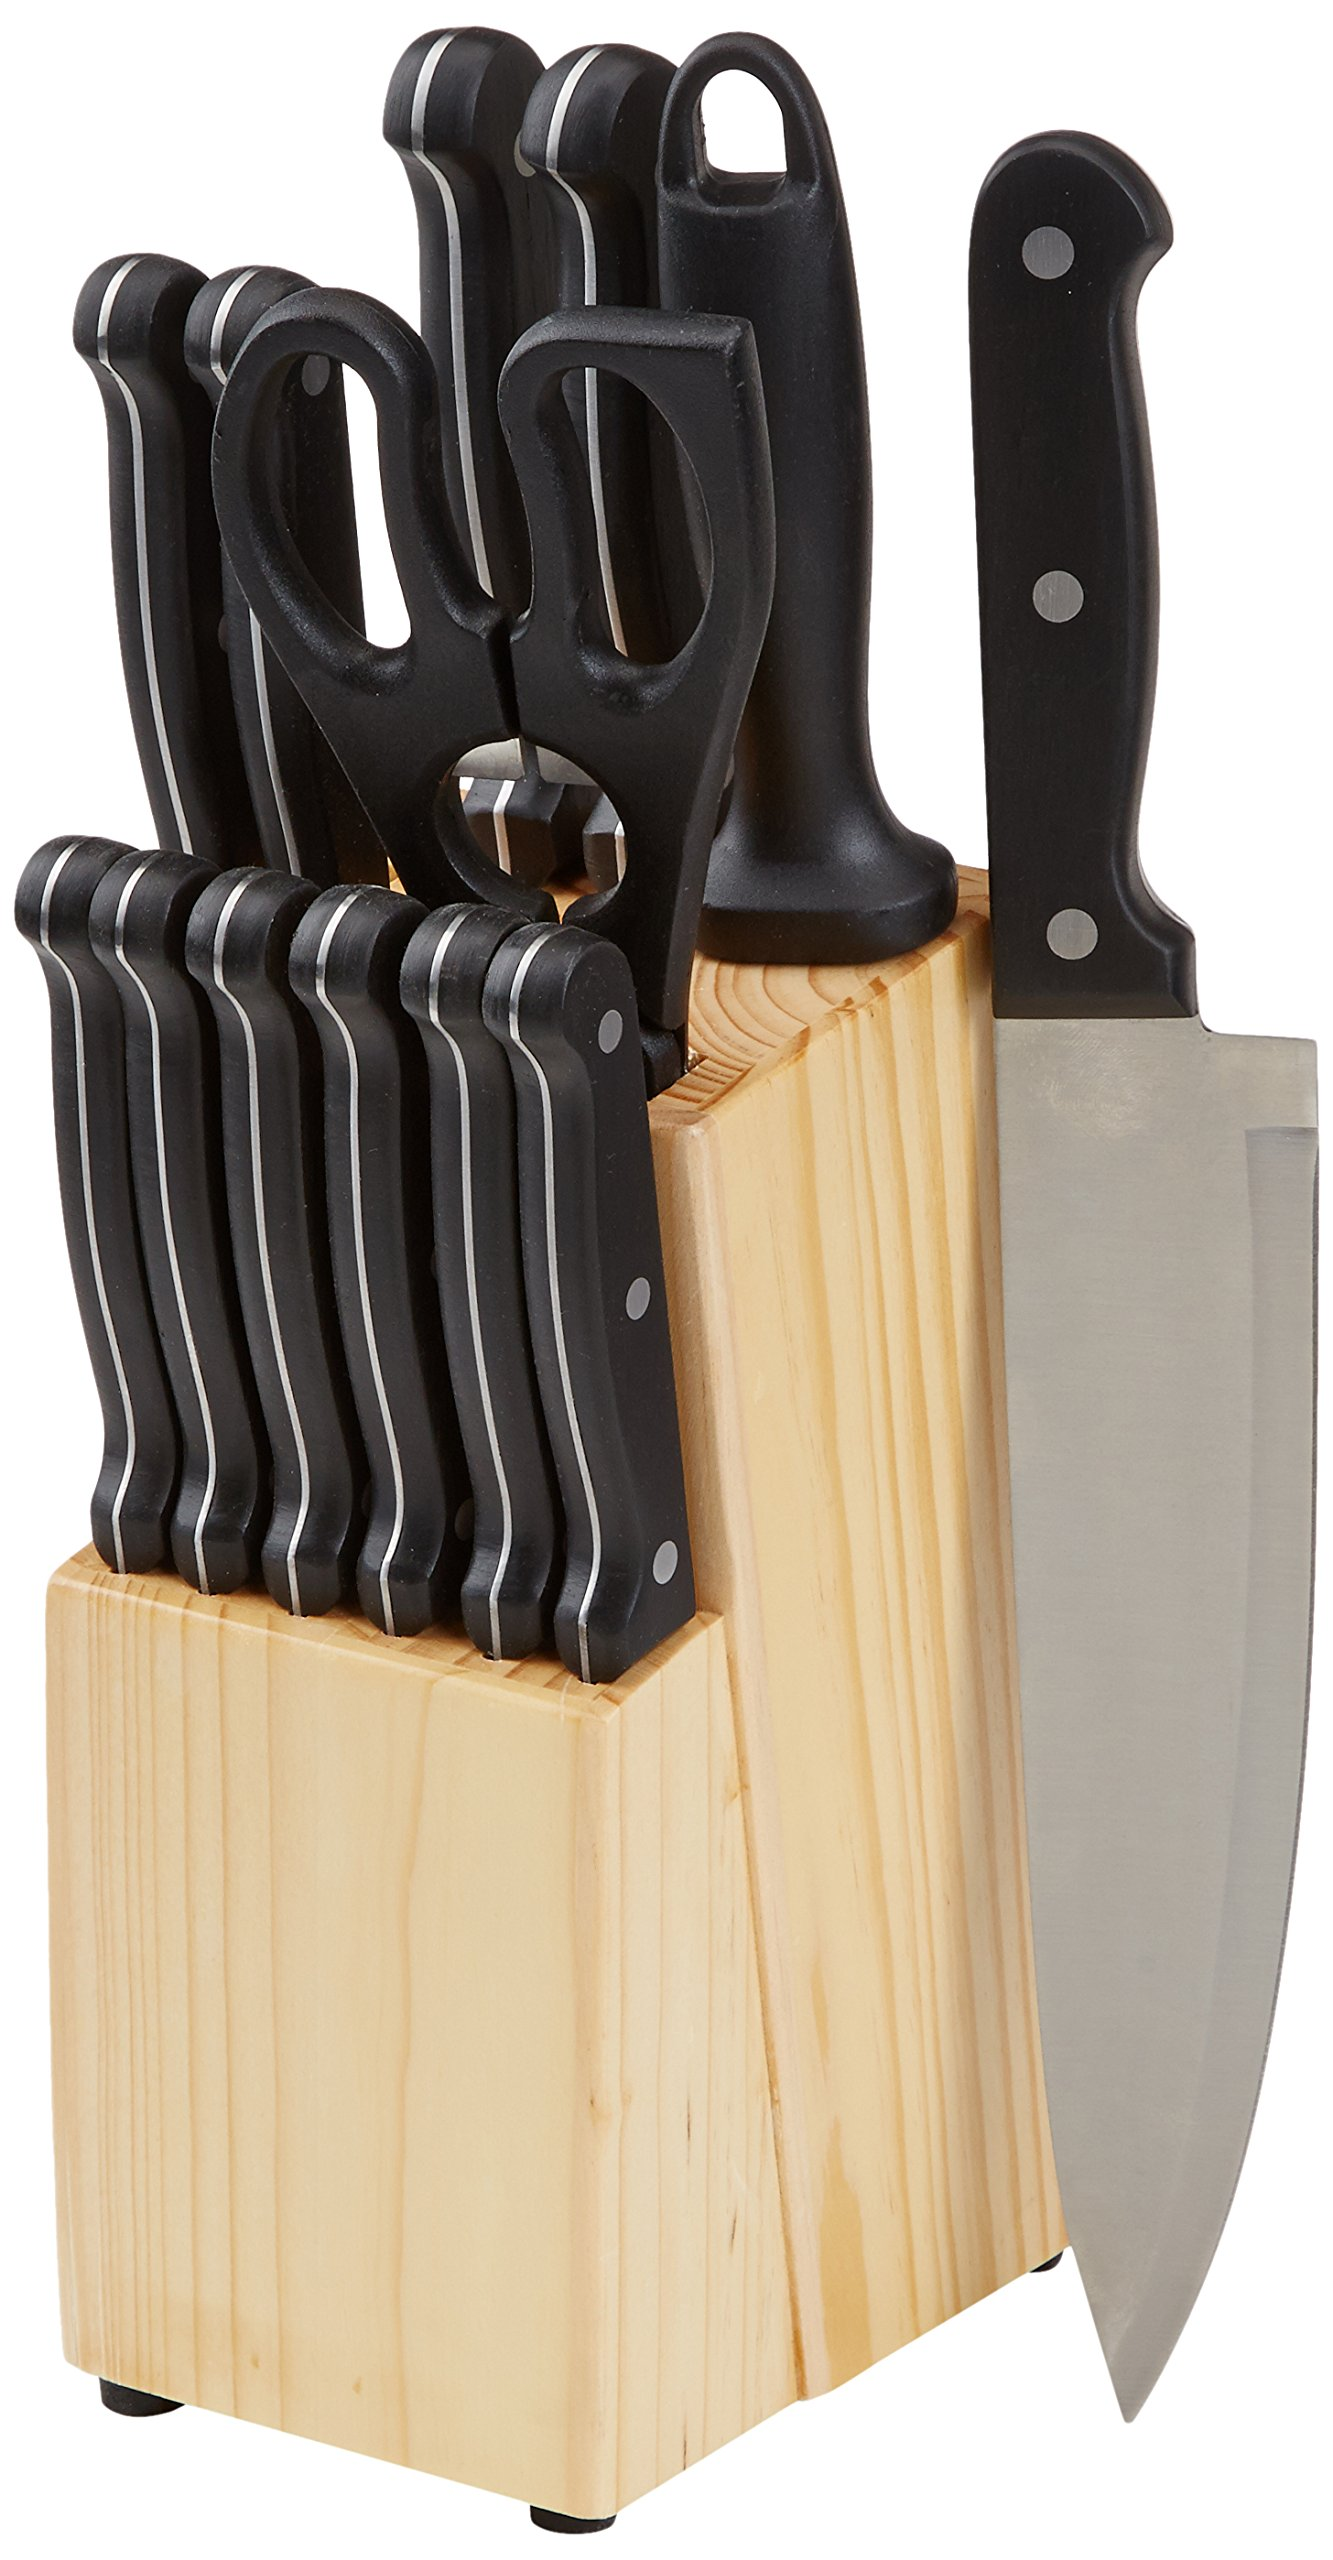 AmazonBasics 14-Piece Knife Set with High-carbon Stainless-steel Blades and Pine Wood Block